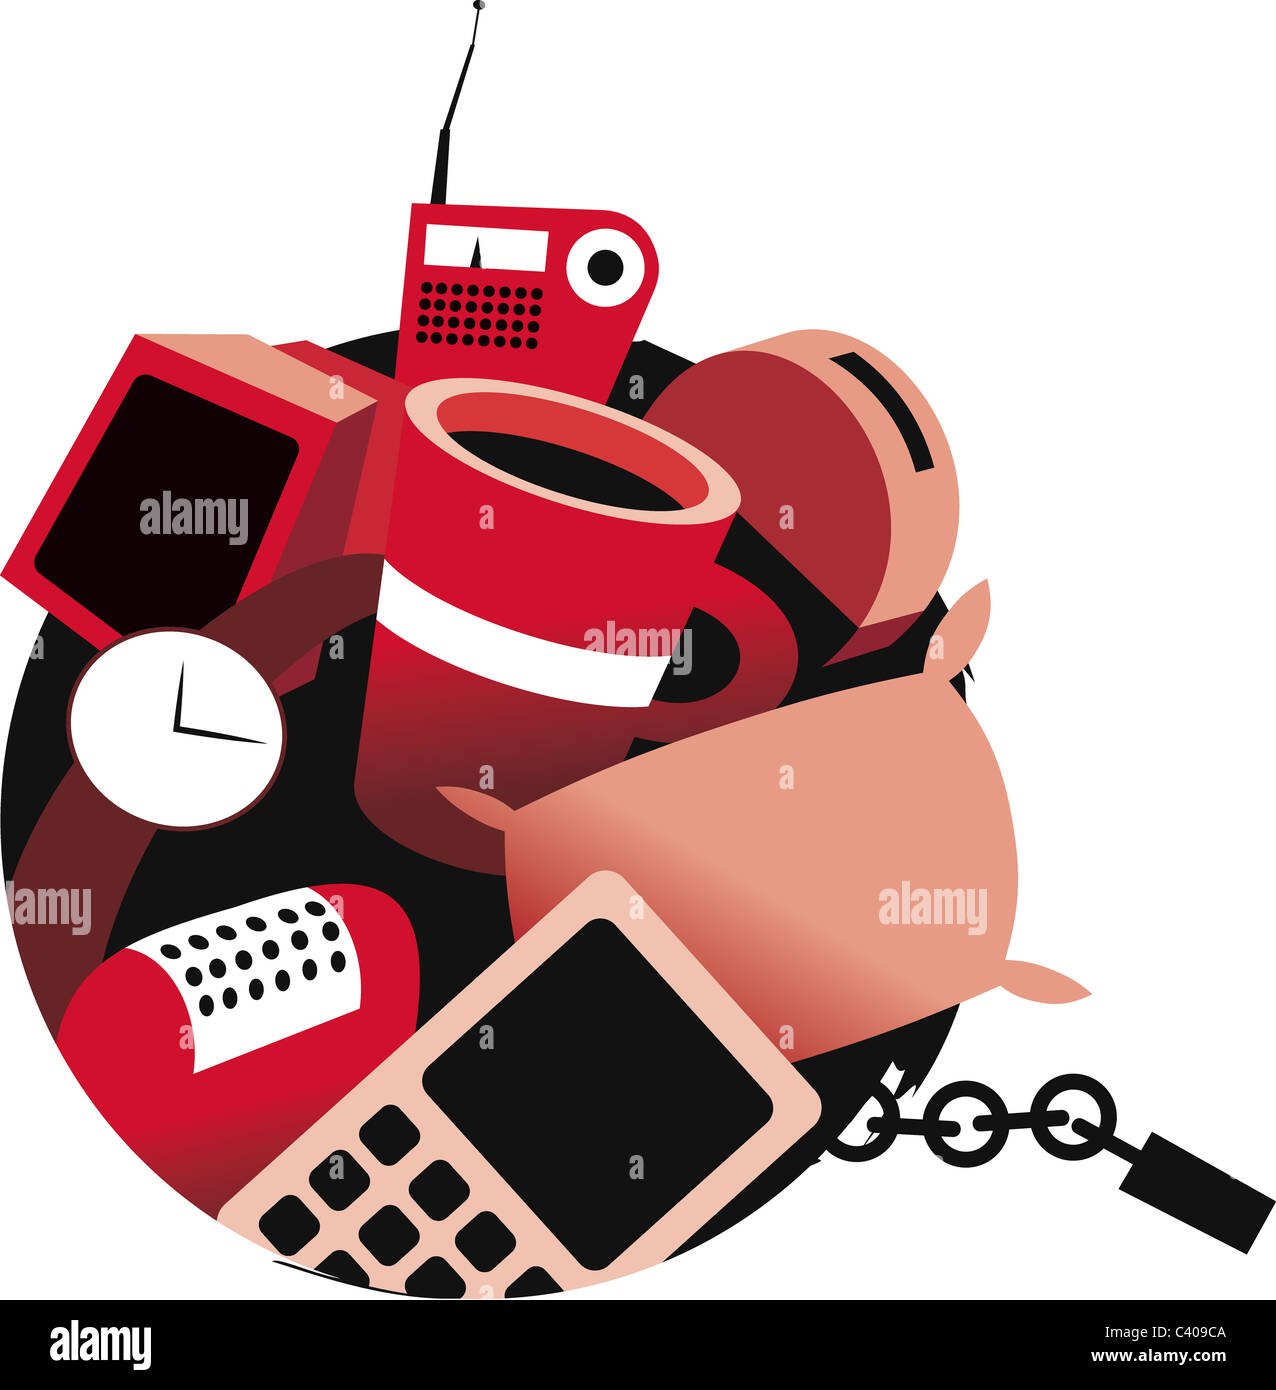 Illustration of a ball and chain of possessions - Stock Image